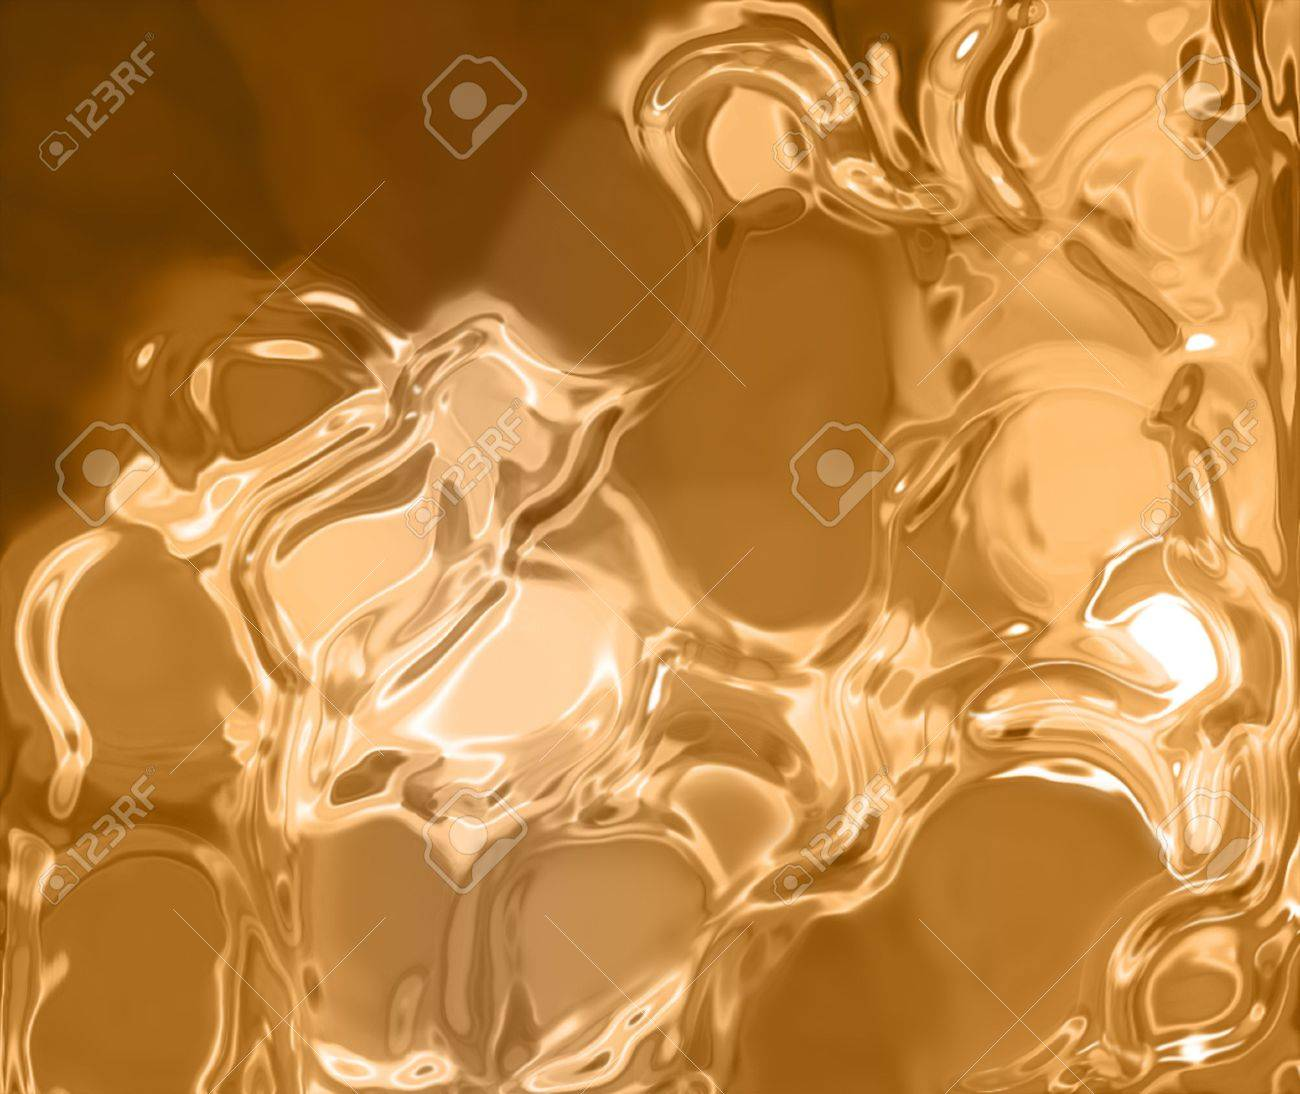 liquid gold background - elegant background Stock Photo - 7230064